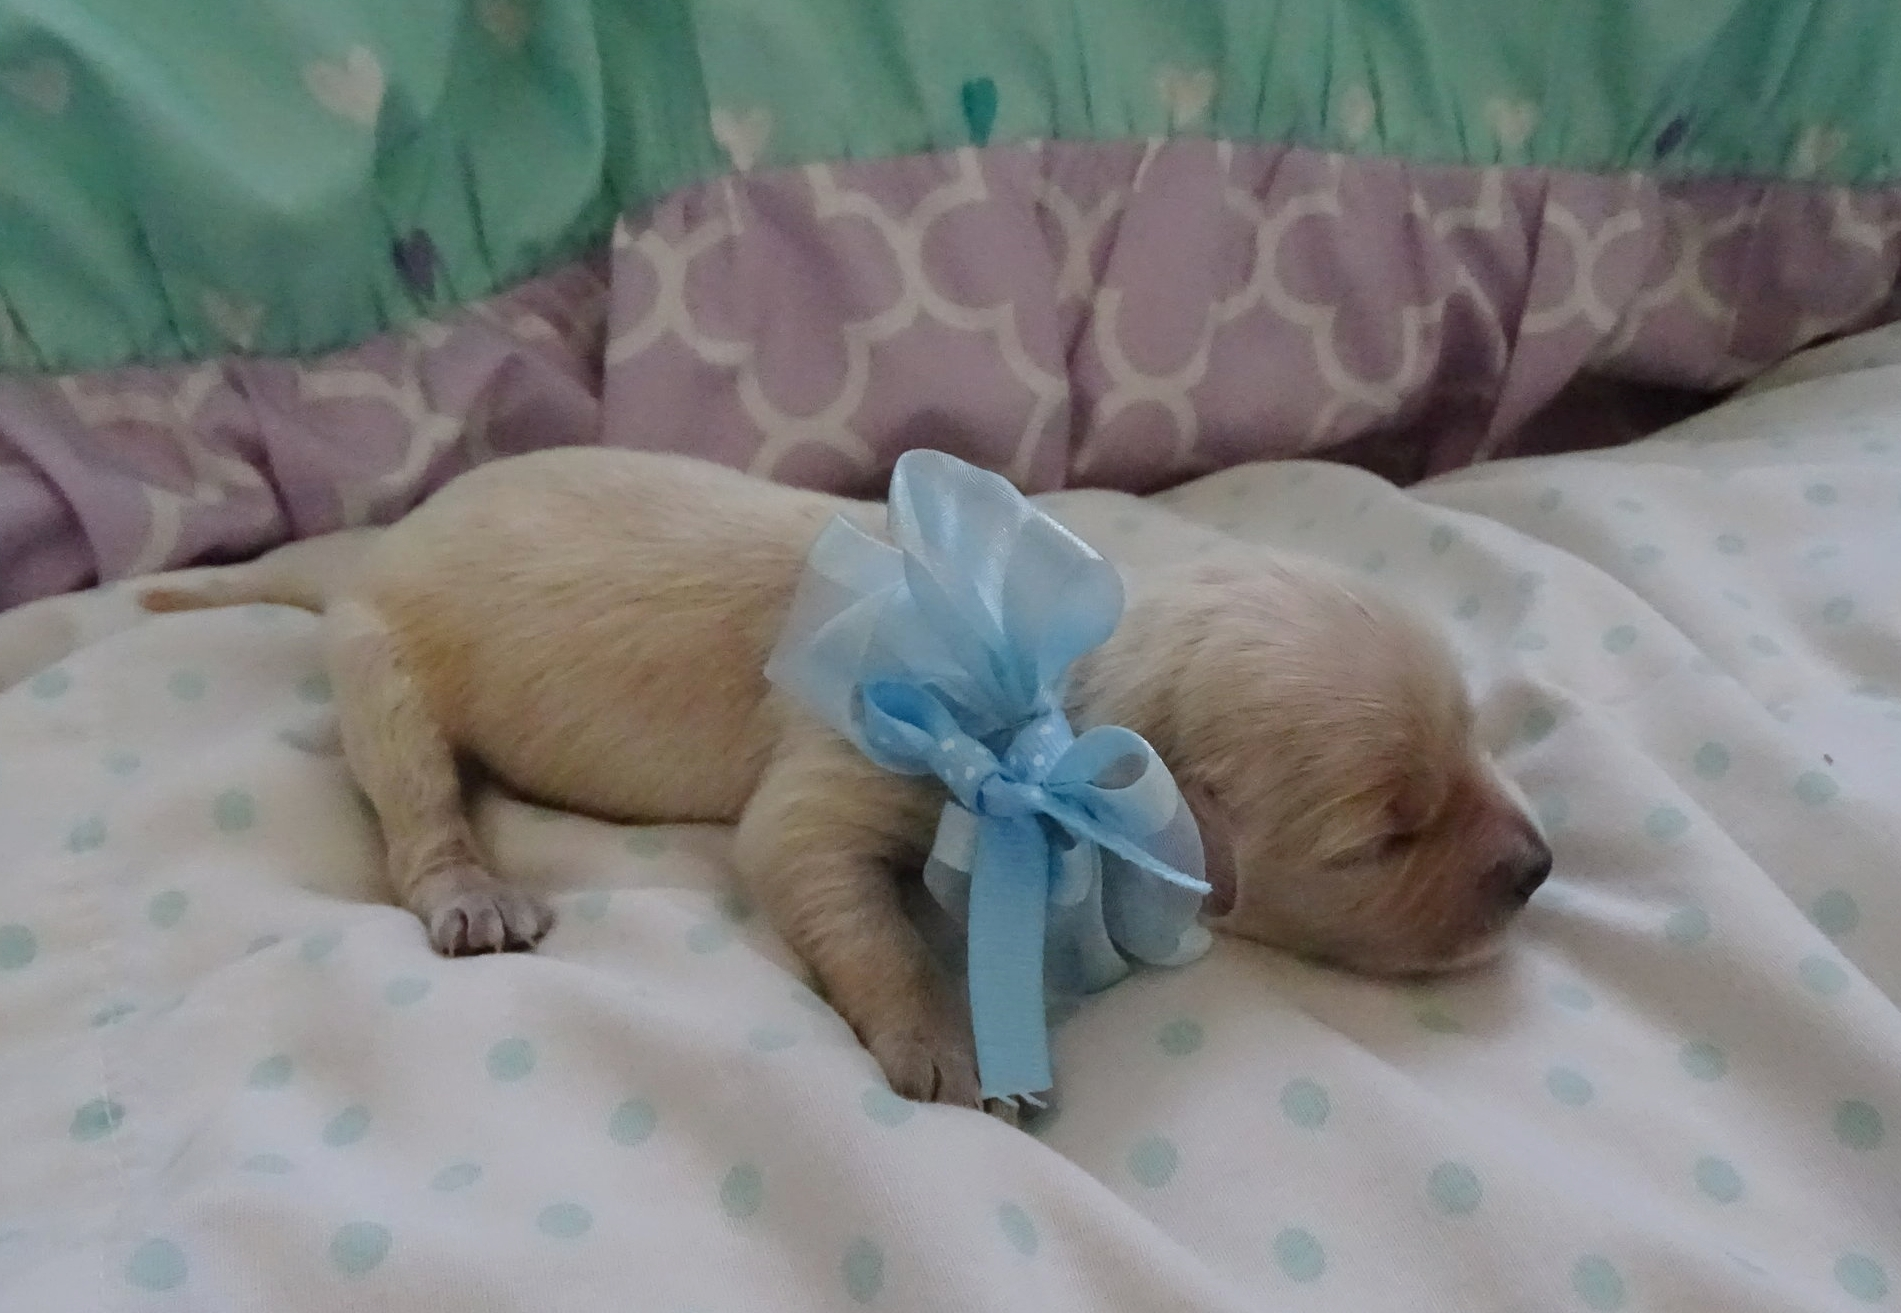 Meet Rusty - Rusty is a light gold colored male puppy. He was born at around 7:12 AM and weighed 7.7 oz.